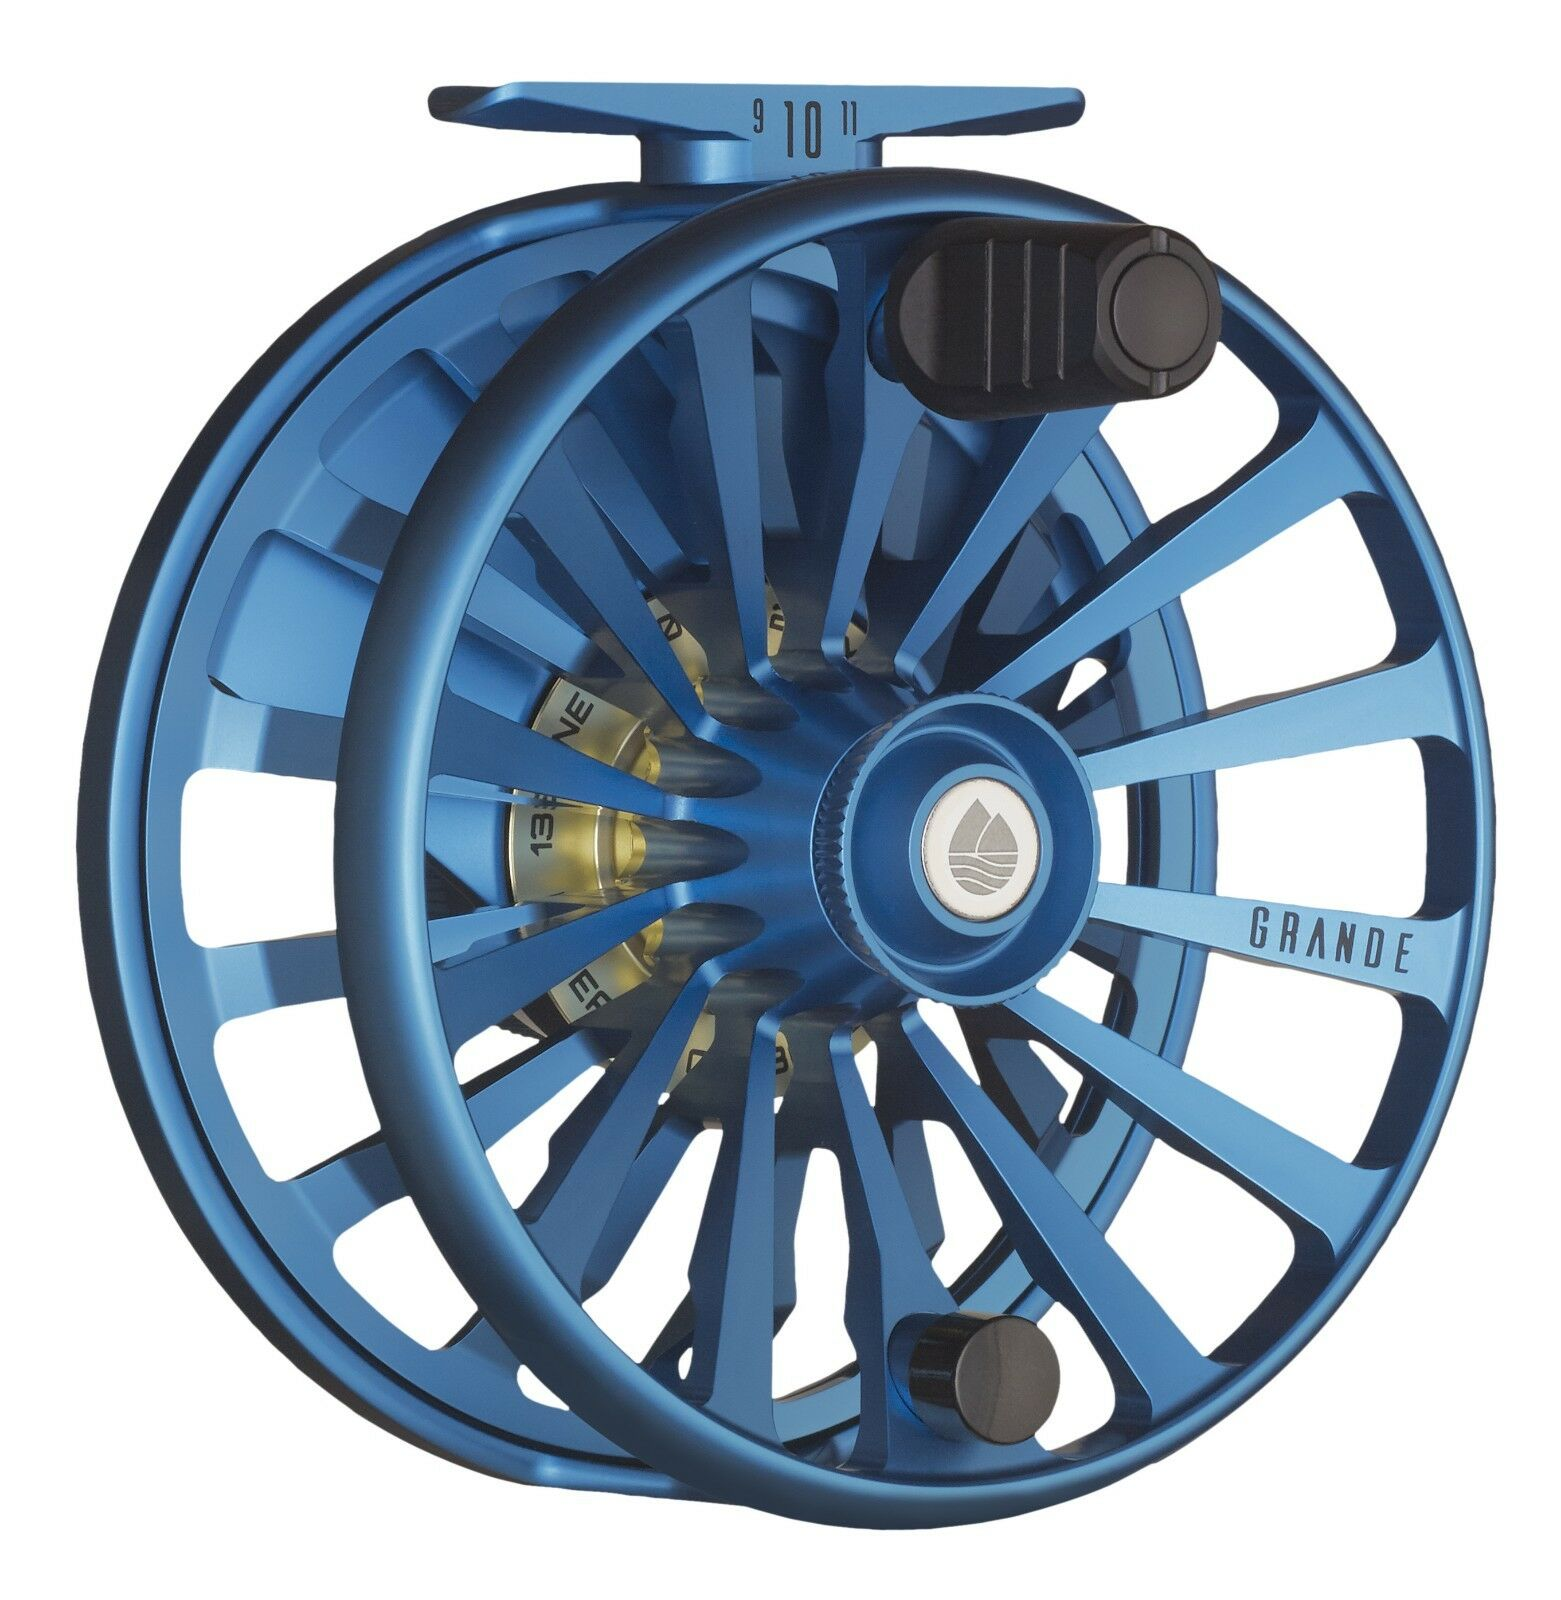 Redington Grande Fly Reel - Size 14+,  color Marine - New  online shopping and fashion store